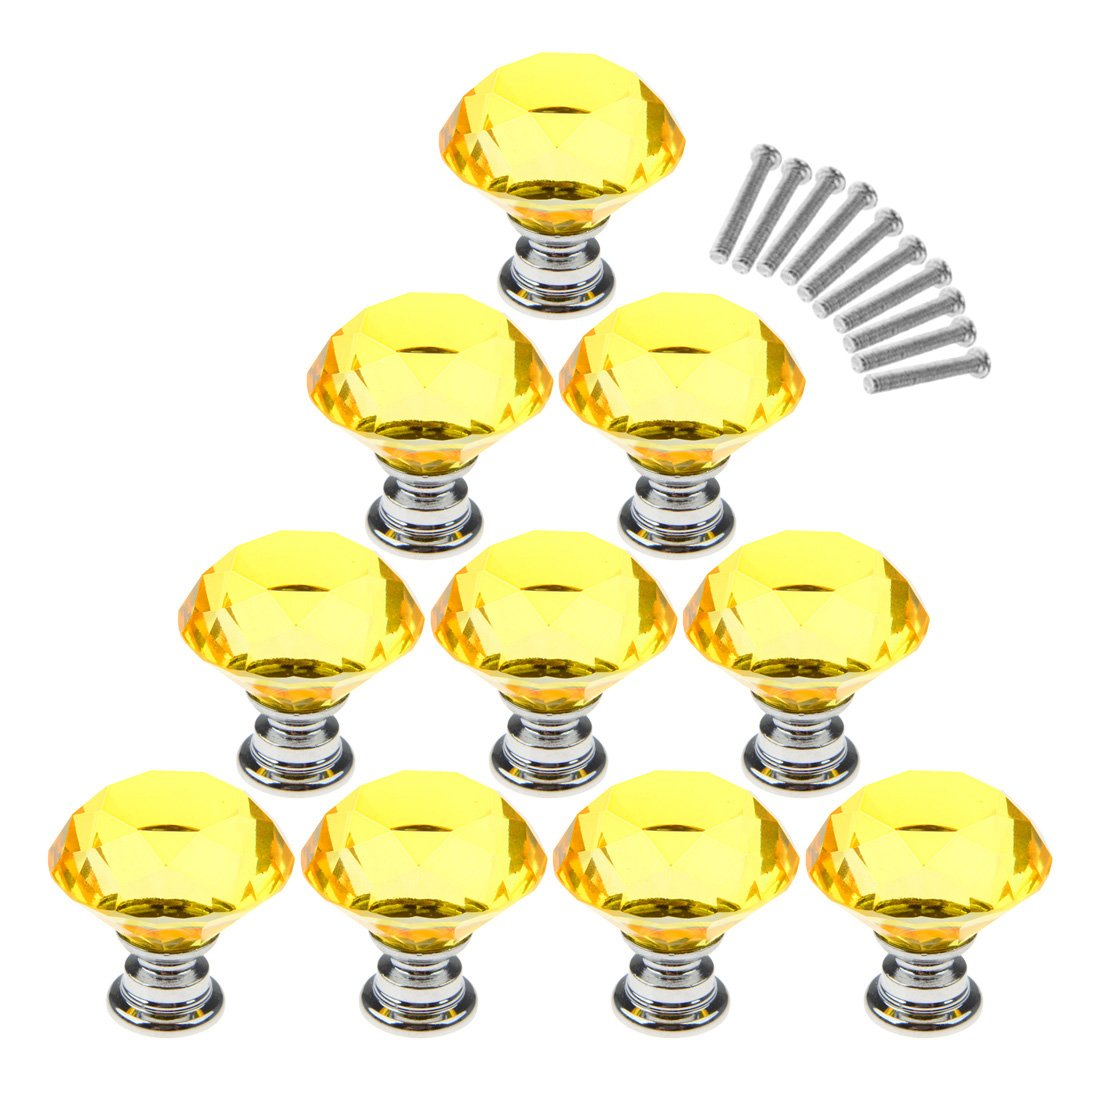 Cabinet Knobs,YIFAN 10Pcs 30mm Crystal Glass Diamond Shape Cabinet Knobs Cupboard Drawer Pull Handles - Yellow